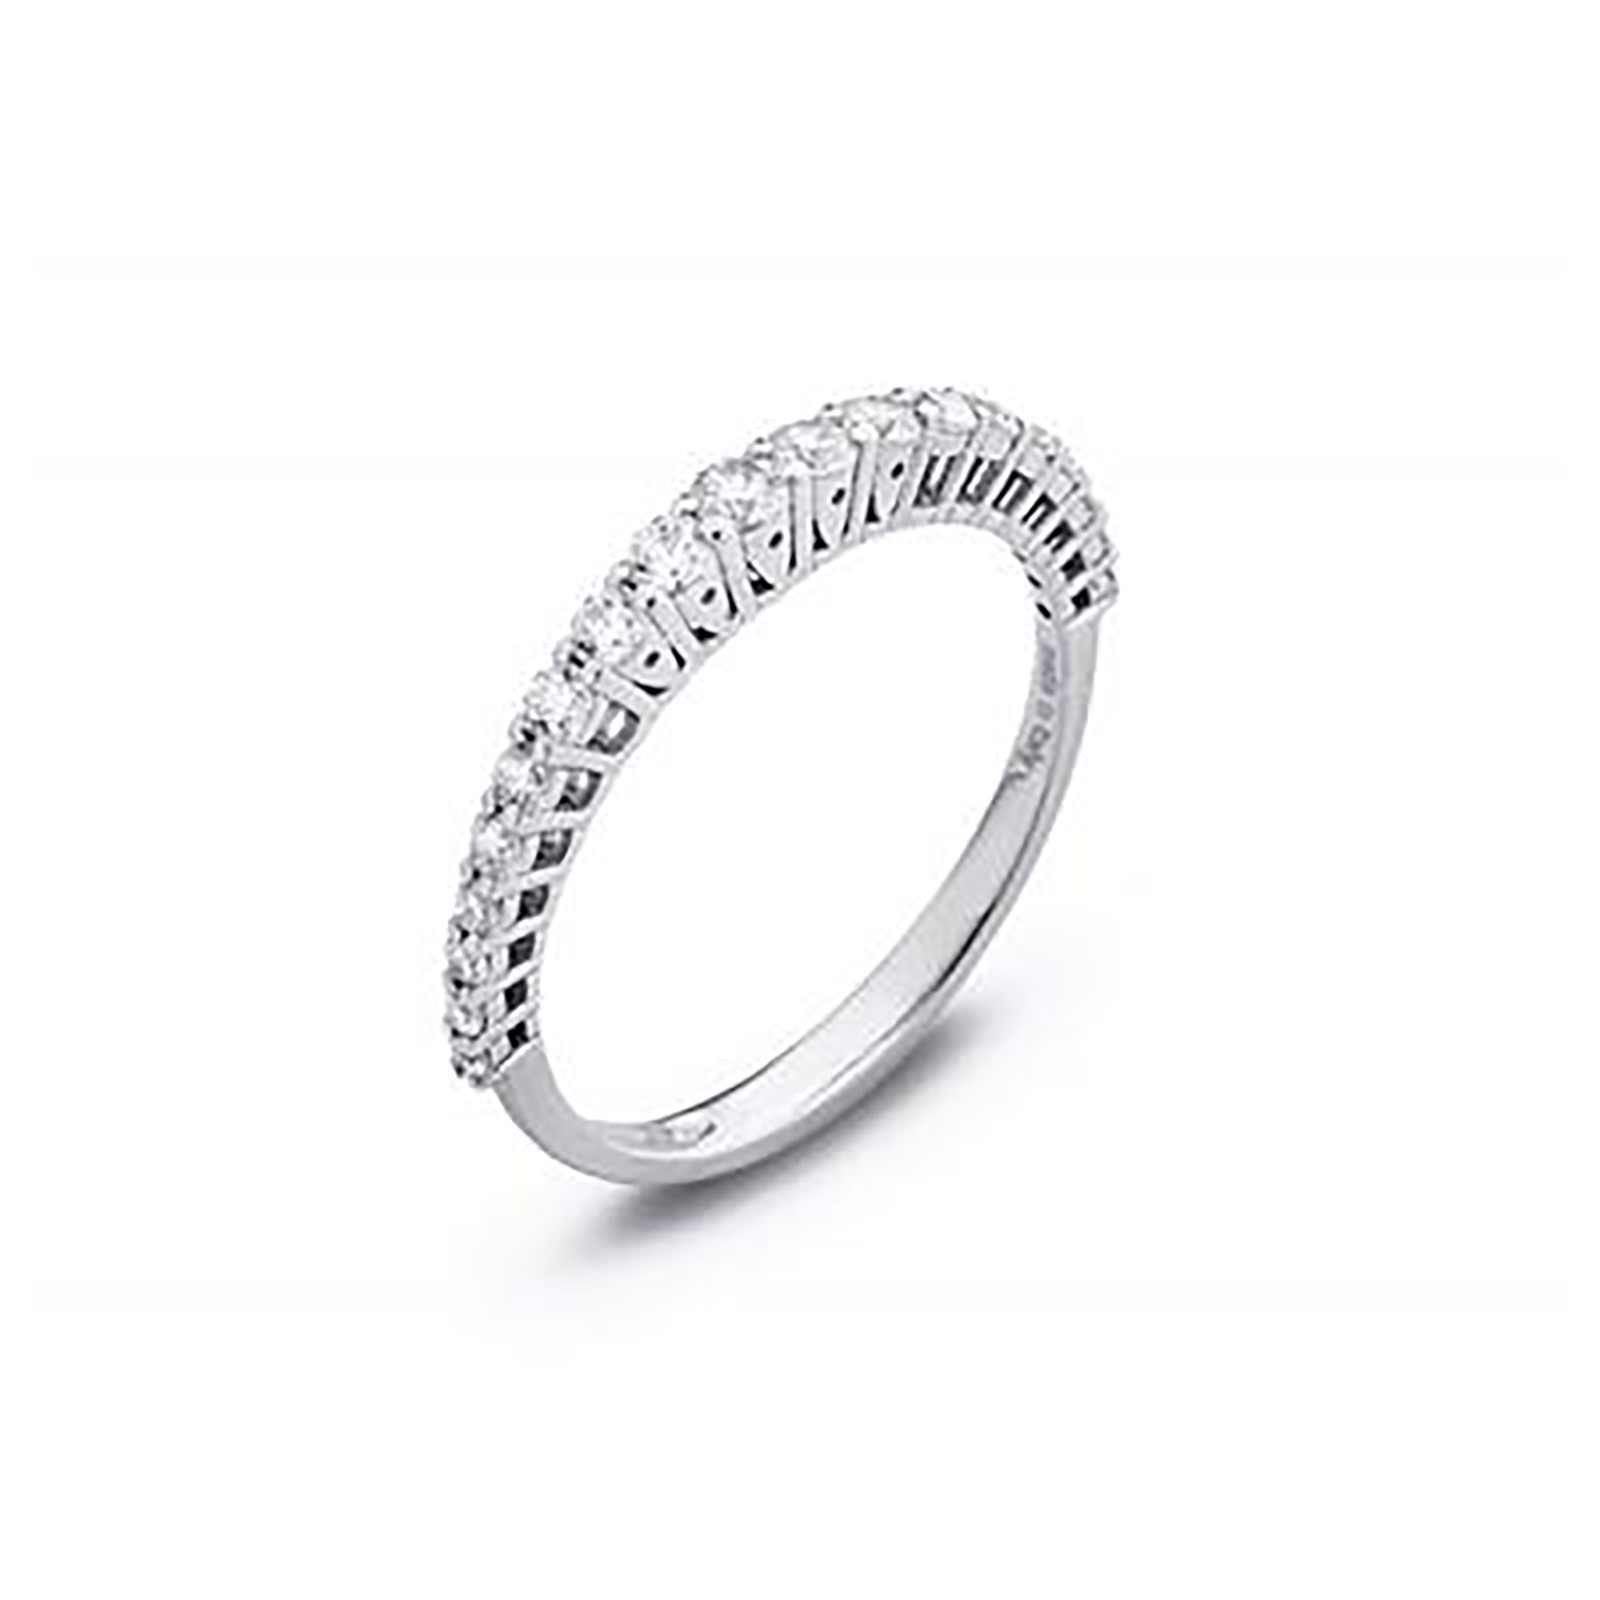 Ponte Vecchio brilliant cut 0.56 carat total weight diamond eternity ring in 18 carat white gold